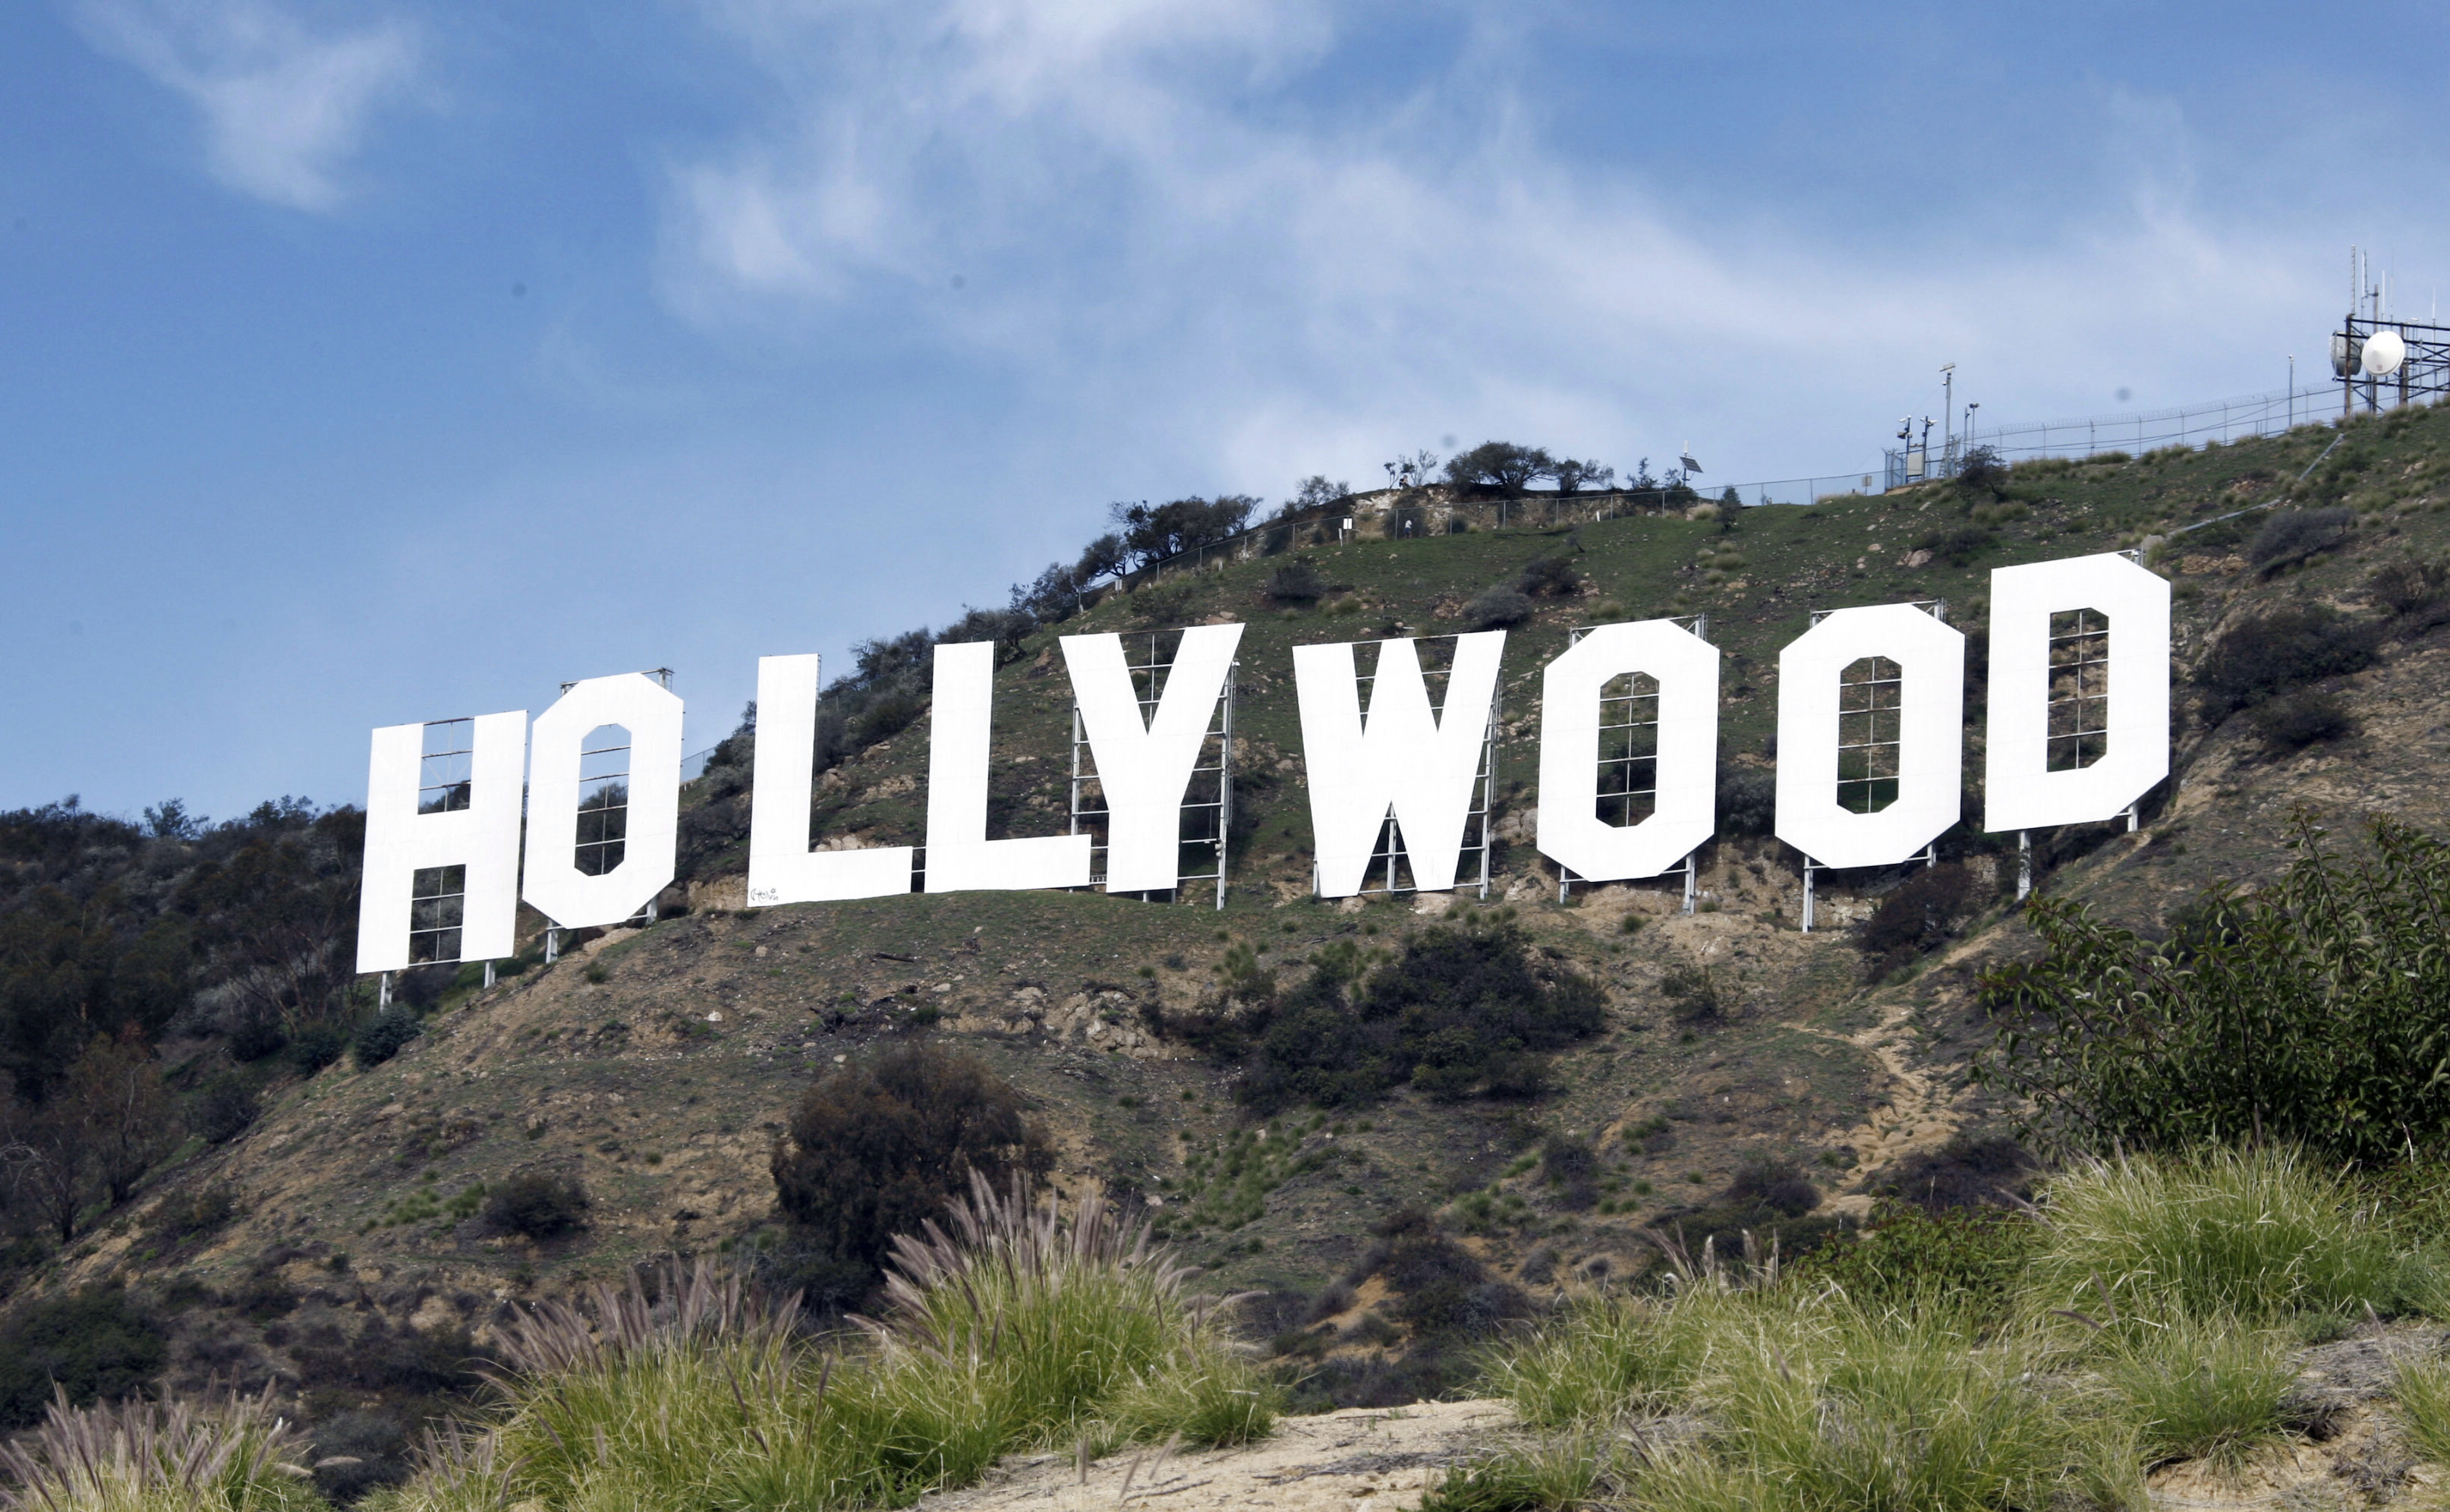 Hollywood machete-wielding attacker shot by police: 'Don't do it!'